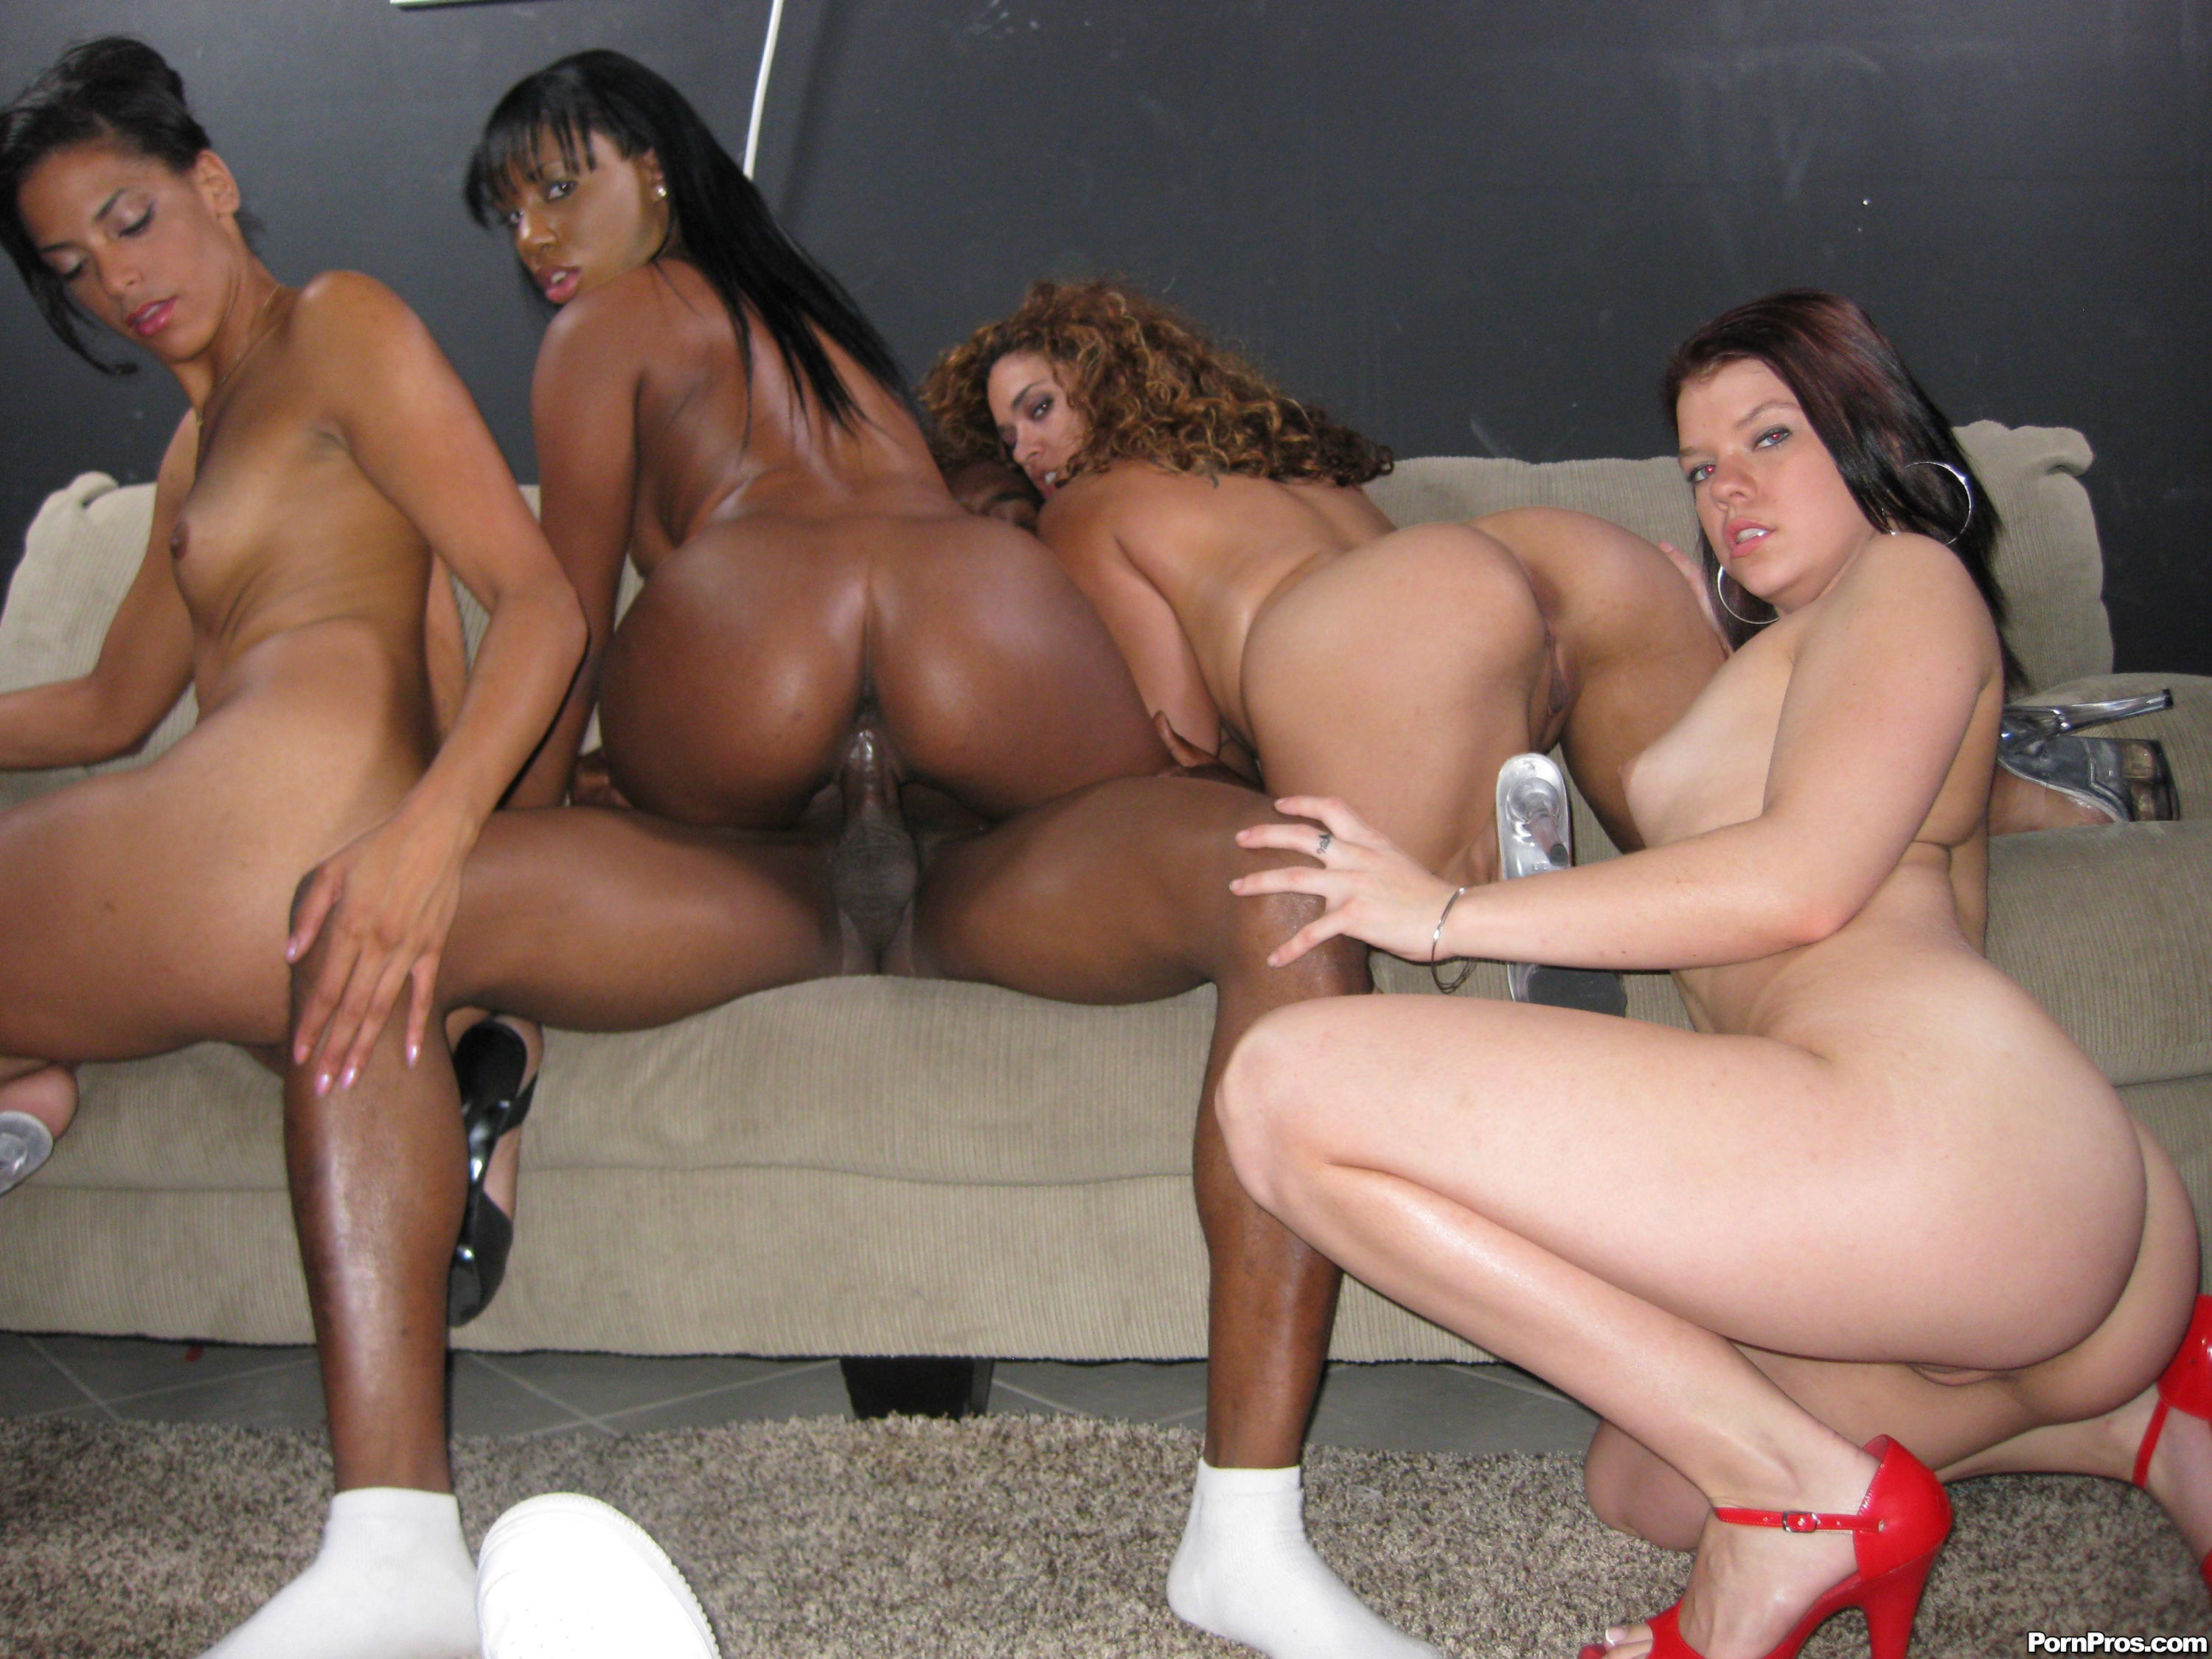 Studs have interracial orgy with beautiful strippers in club